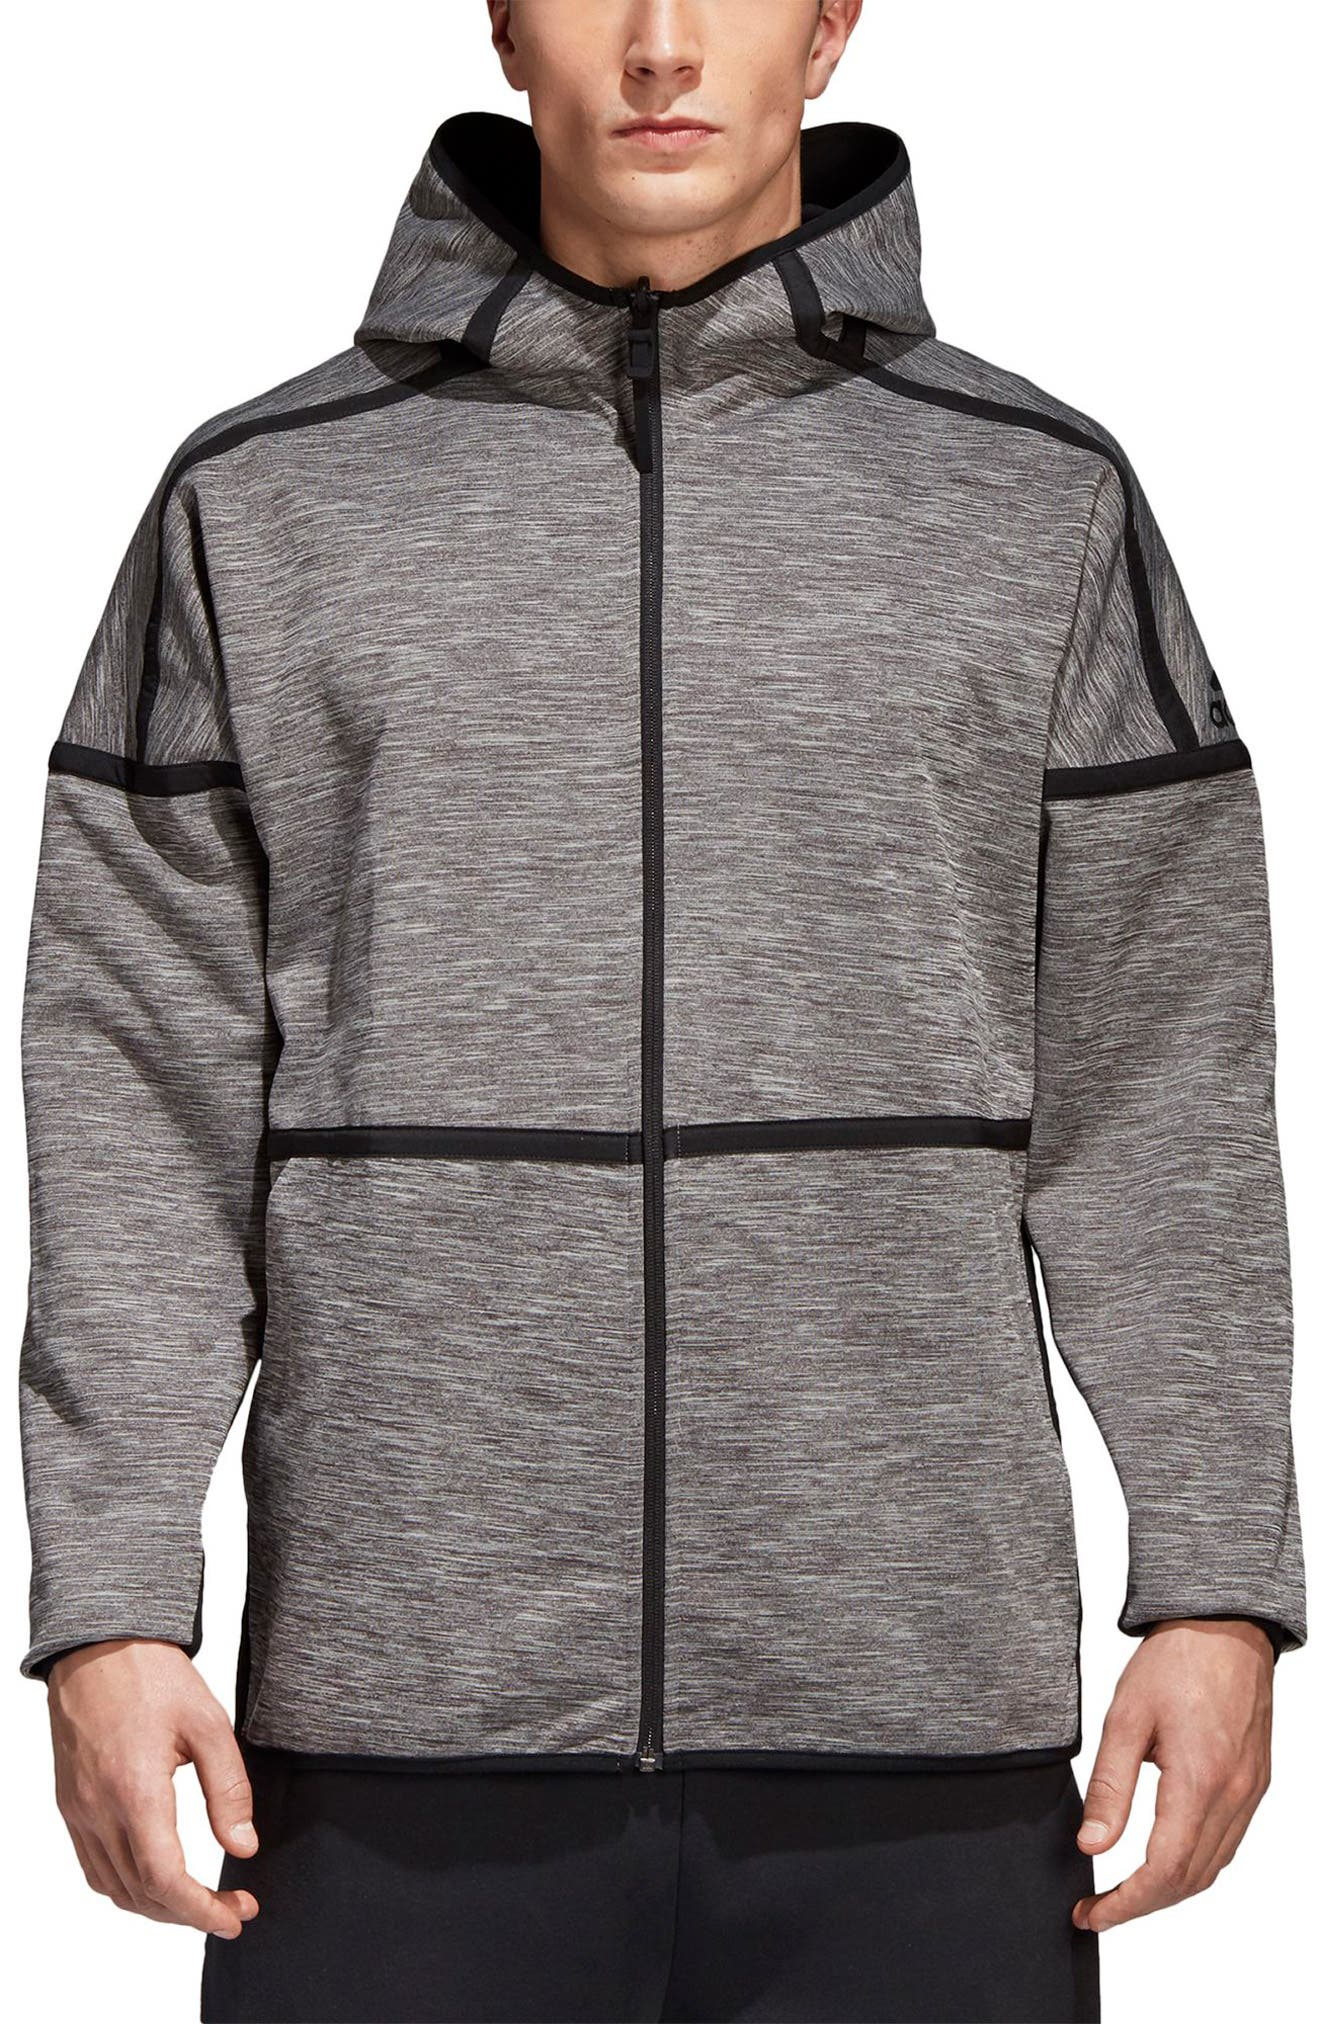 ZNE Regular Fit Reversible Hooded Jacket,                             Main thumbnail 1, color,                             Black / Storm Heather/ Mgh